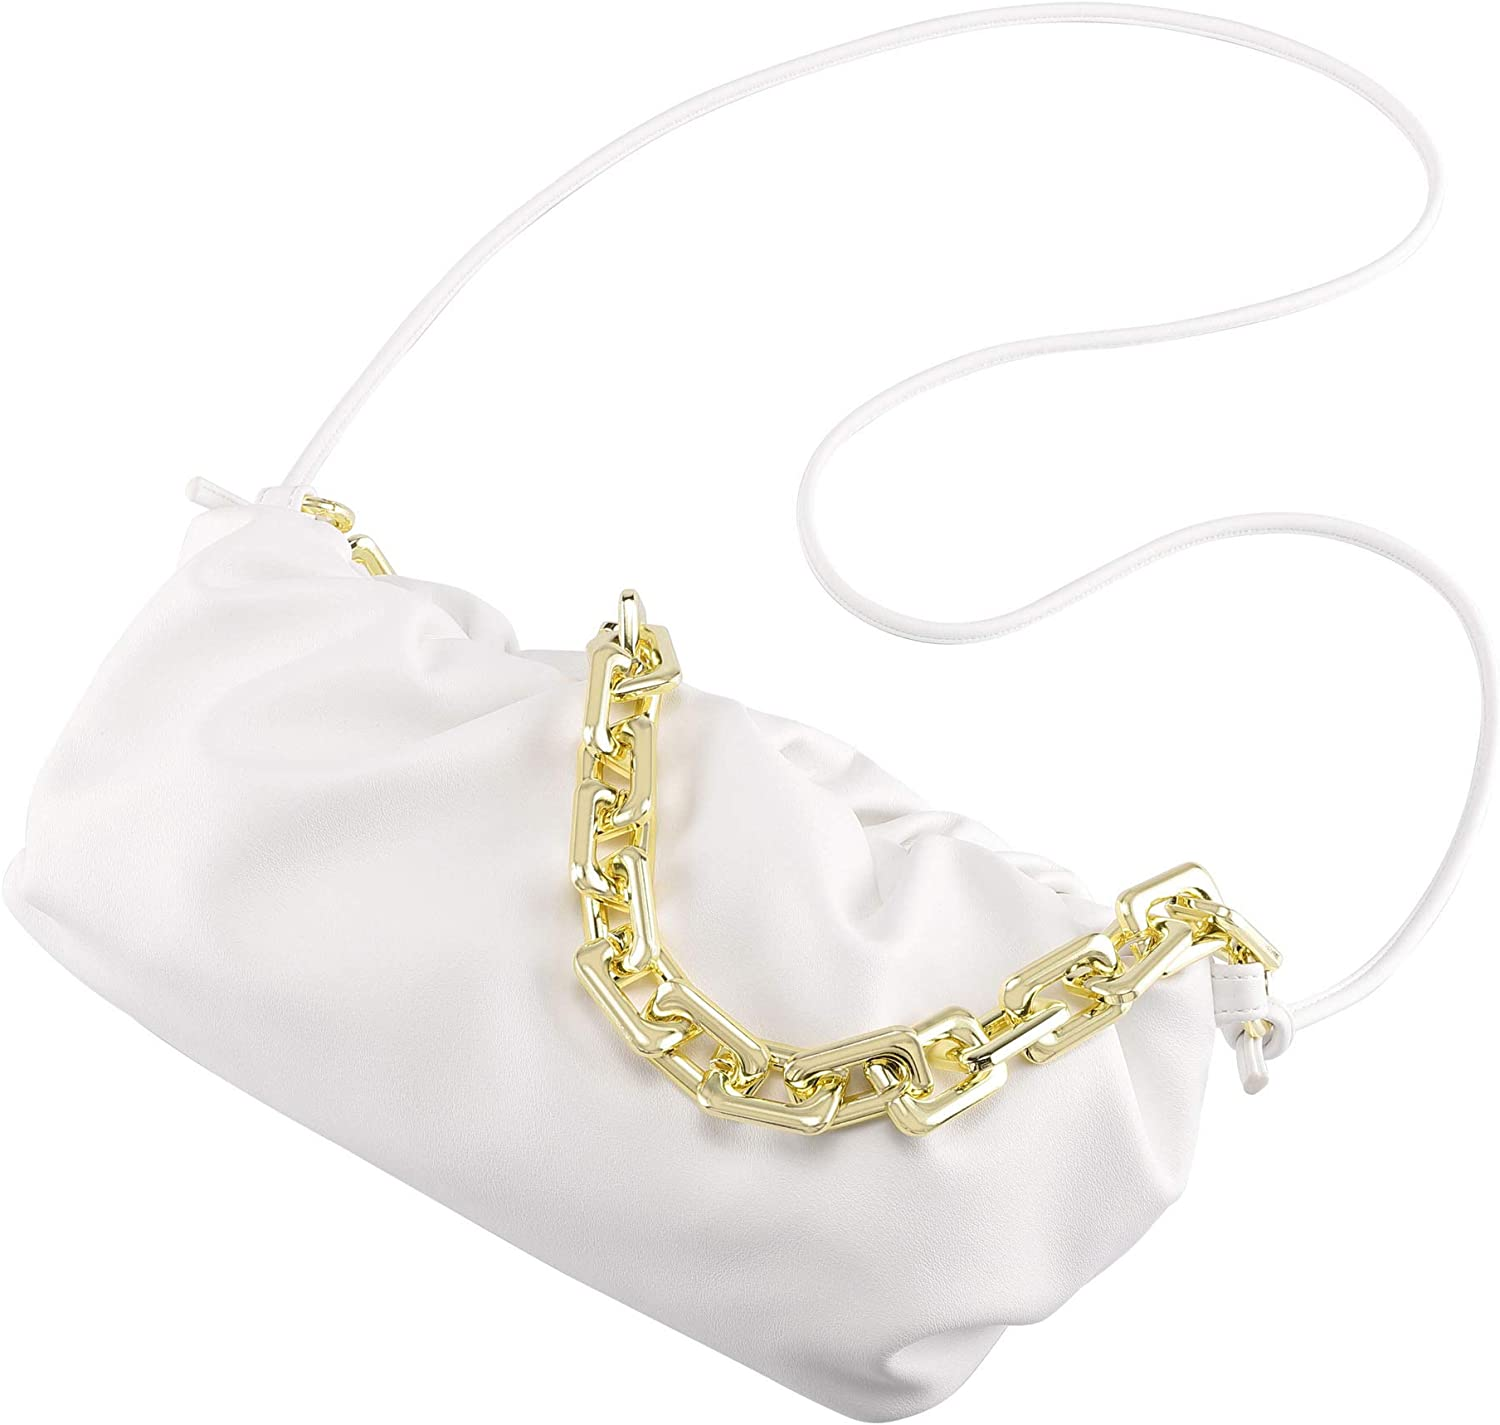 CHIC store DIARY Clutch Purse for Women Pouch C Ruched Chain Chunk Bag Excellence